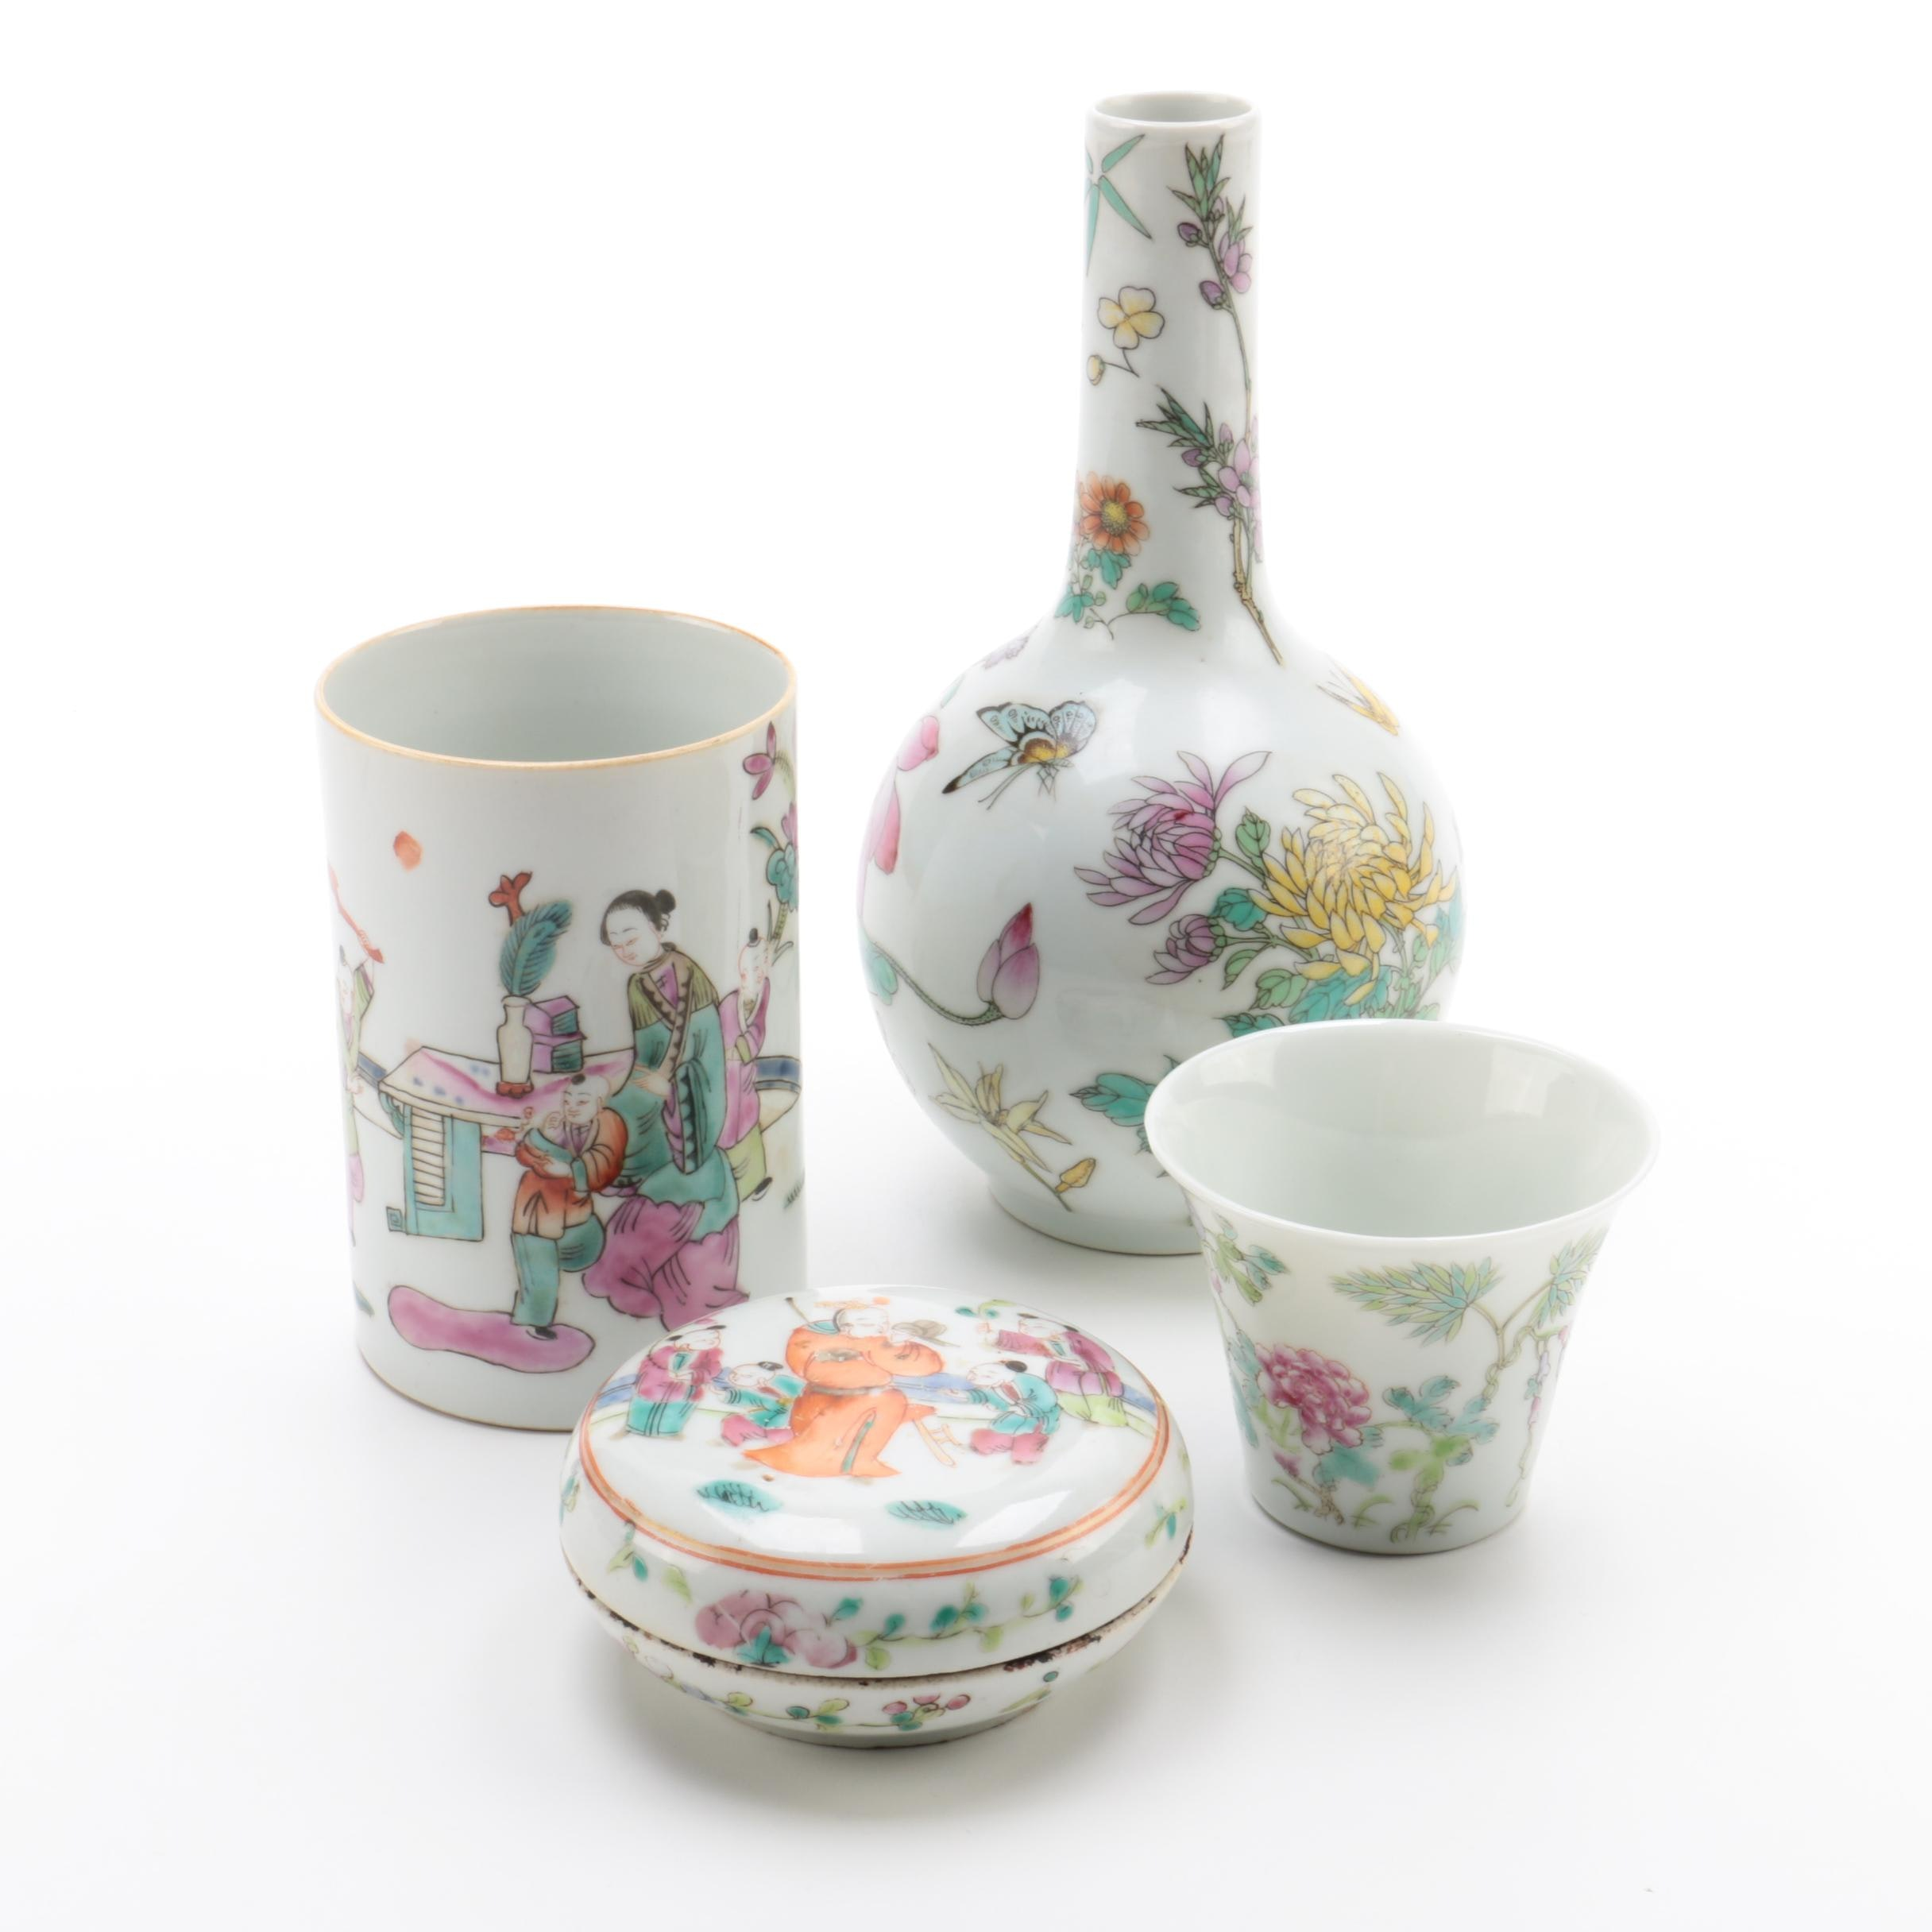 Chinese Antique and Vintage Porcelain Vases With Brush Pot and Covered Dish